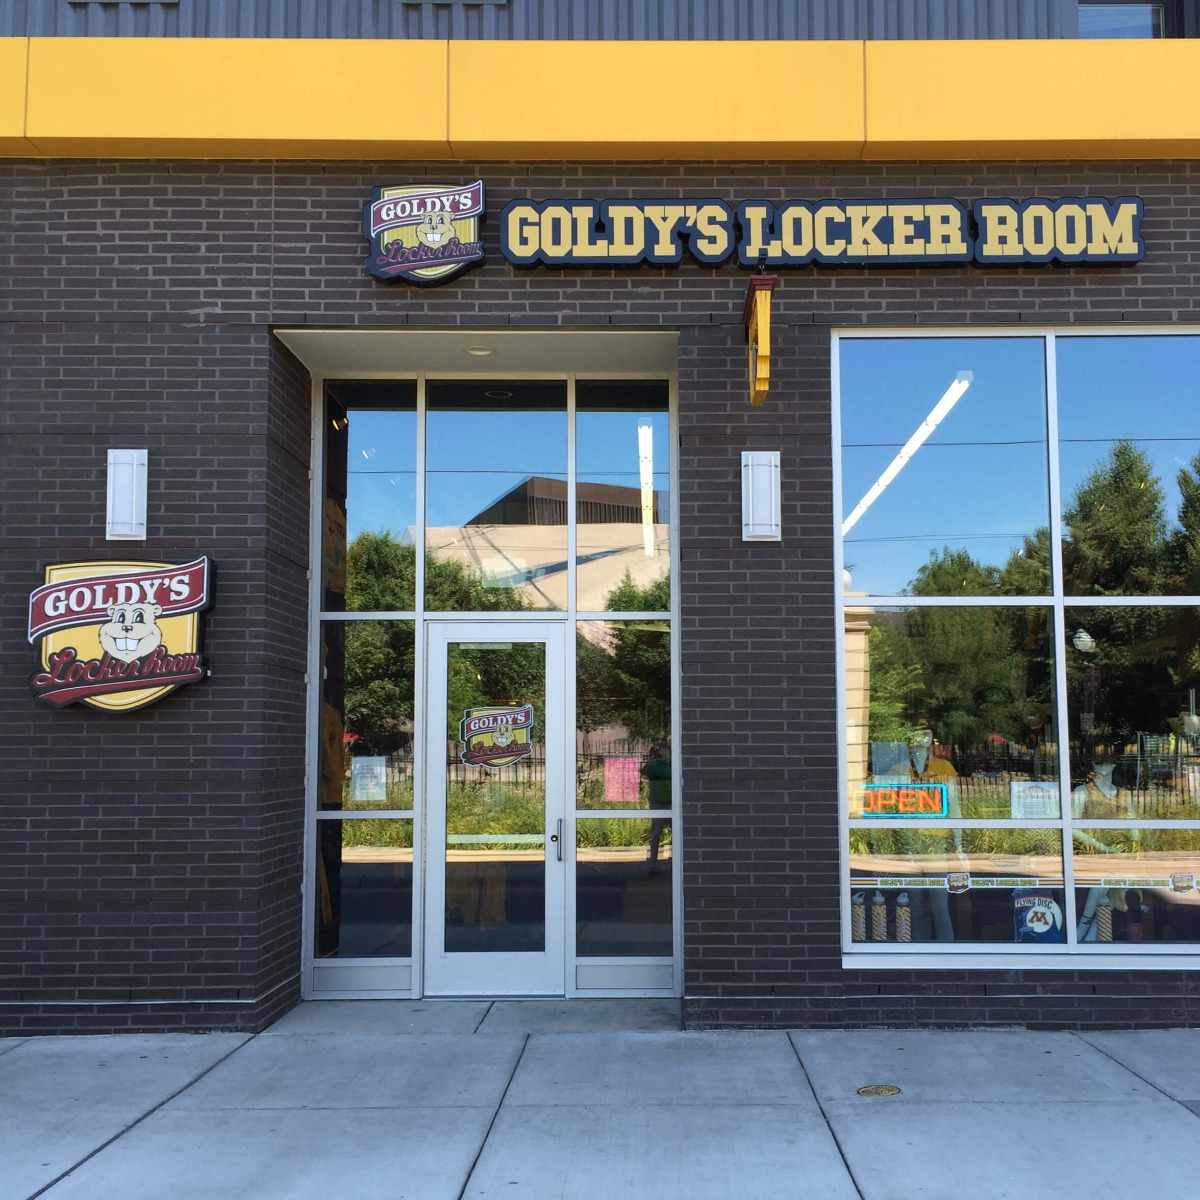 Stadium Village Goldy's Locker Room